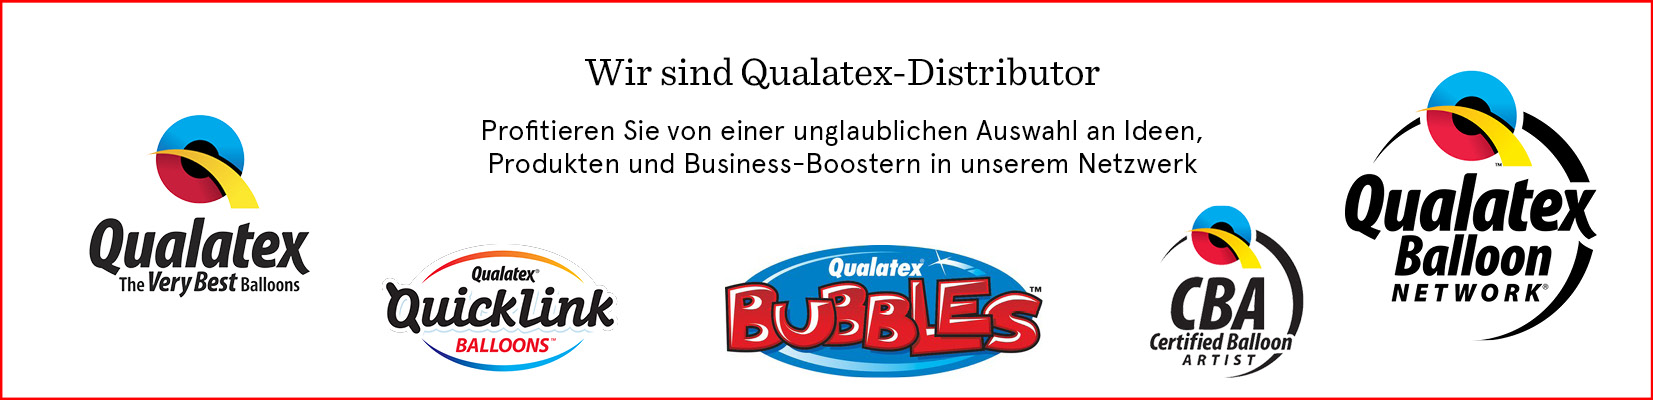 Qualatex Distributor